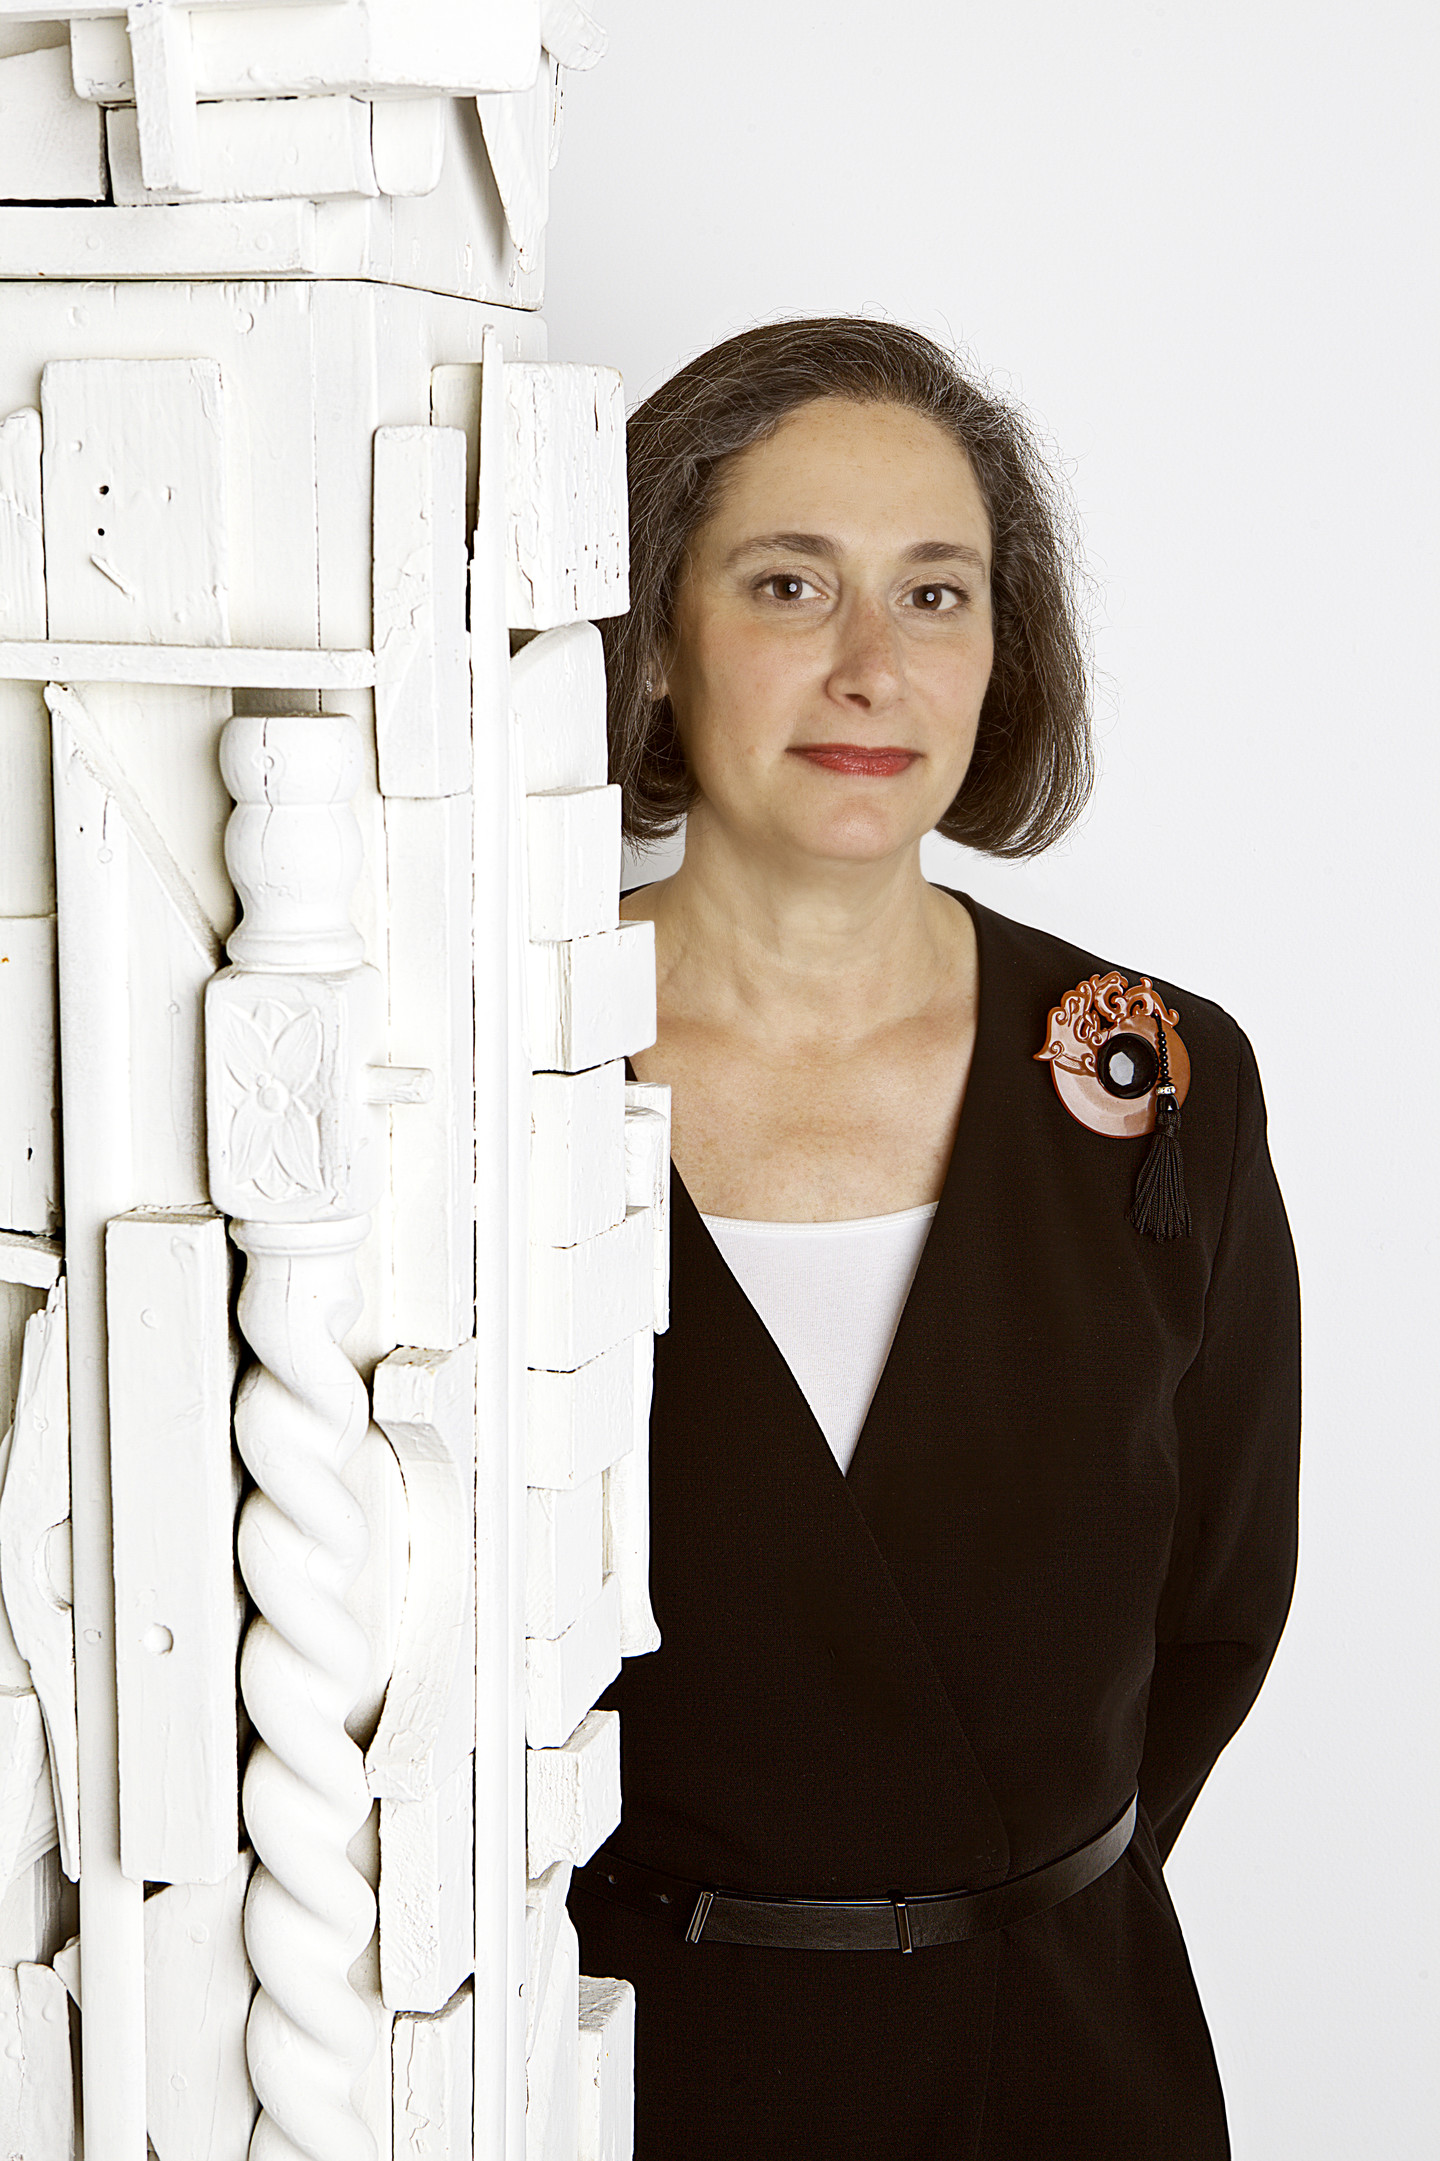 A woman with light skin and short brown hair posing behind a white assemblage sculpture.